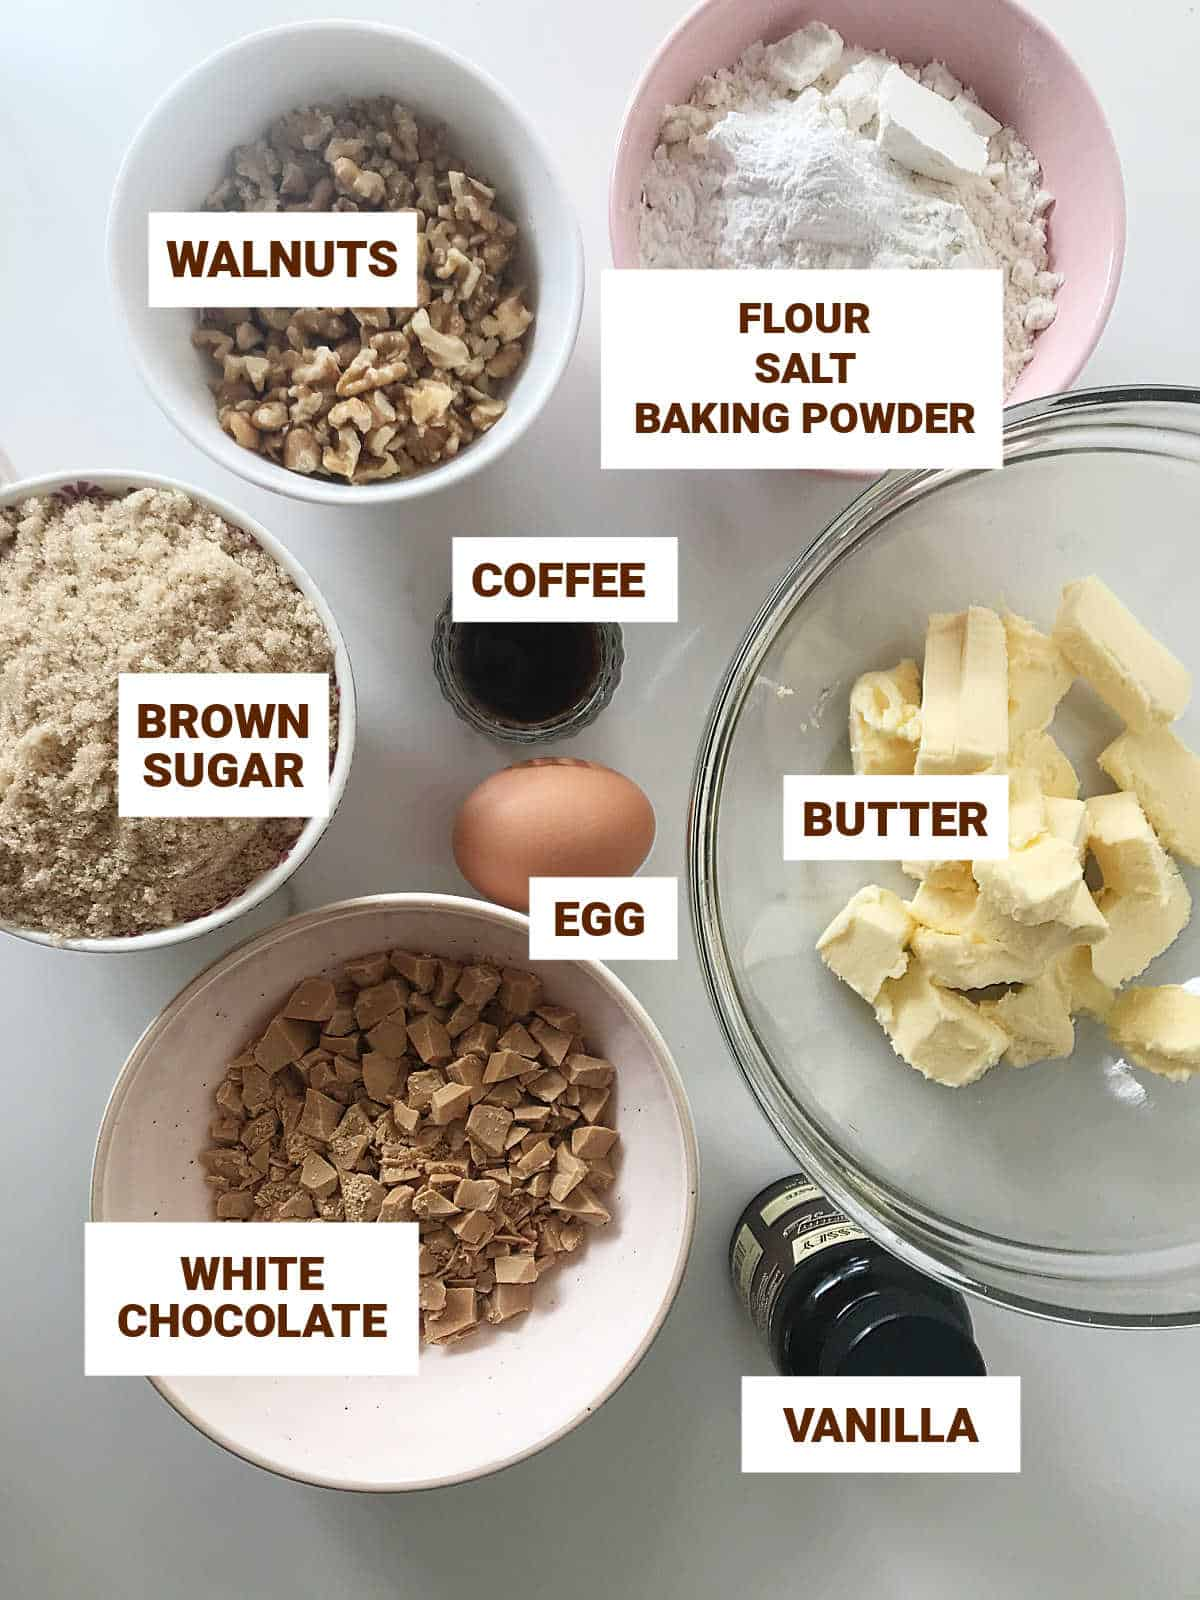 White chocolate blondies ingredients in bowls on white surface including walnuts, coffee, egg, and vanilla